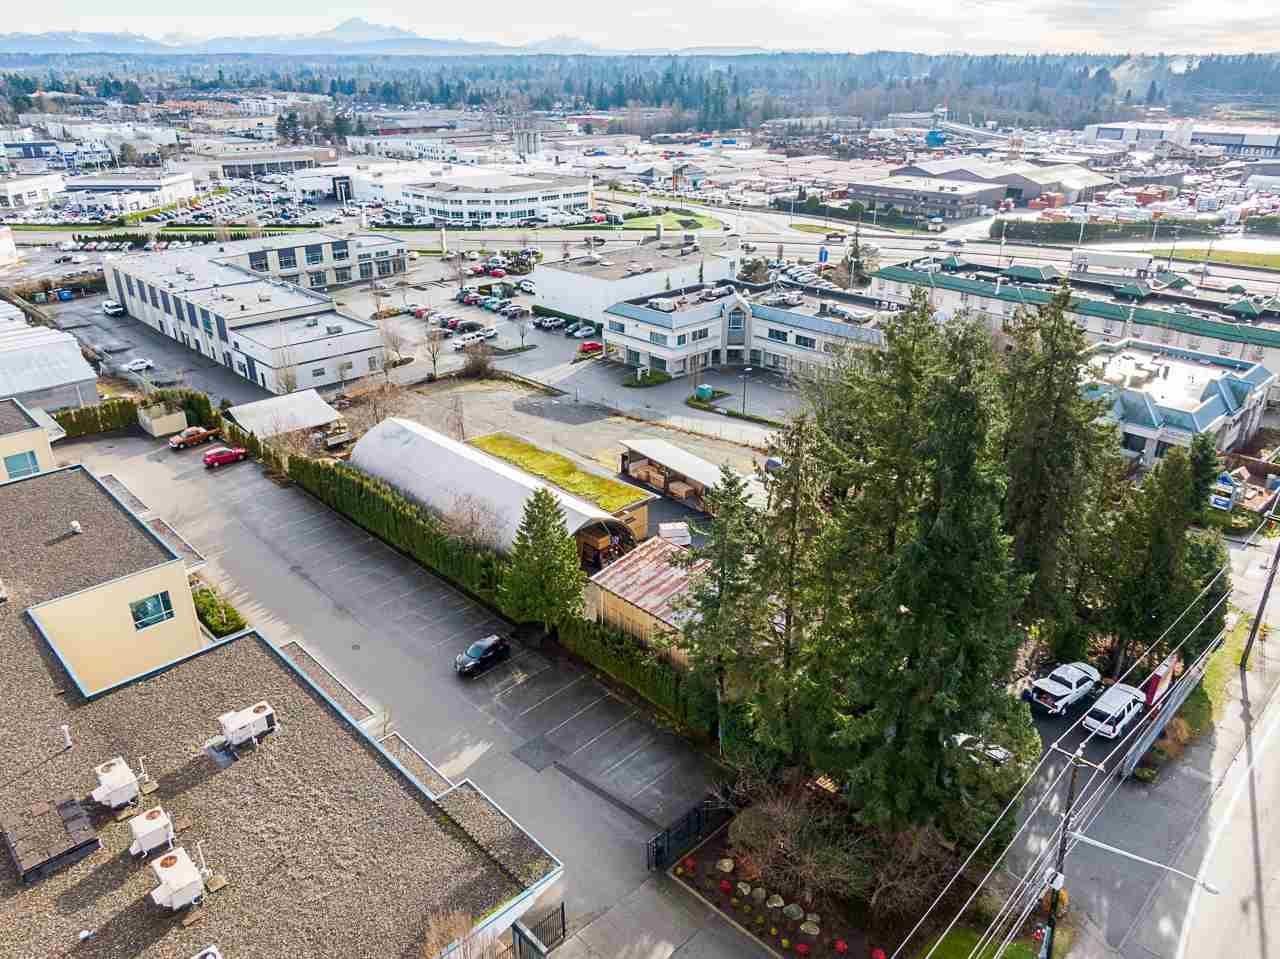 Main Photo: 5674 192 Street in Surrey: Cloverdale BC Industrial for sale (Cloverdale)  : MLS®# C8037553